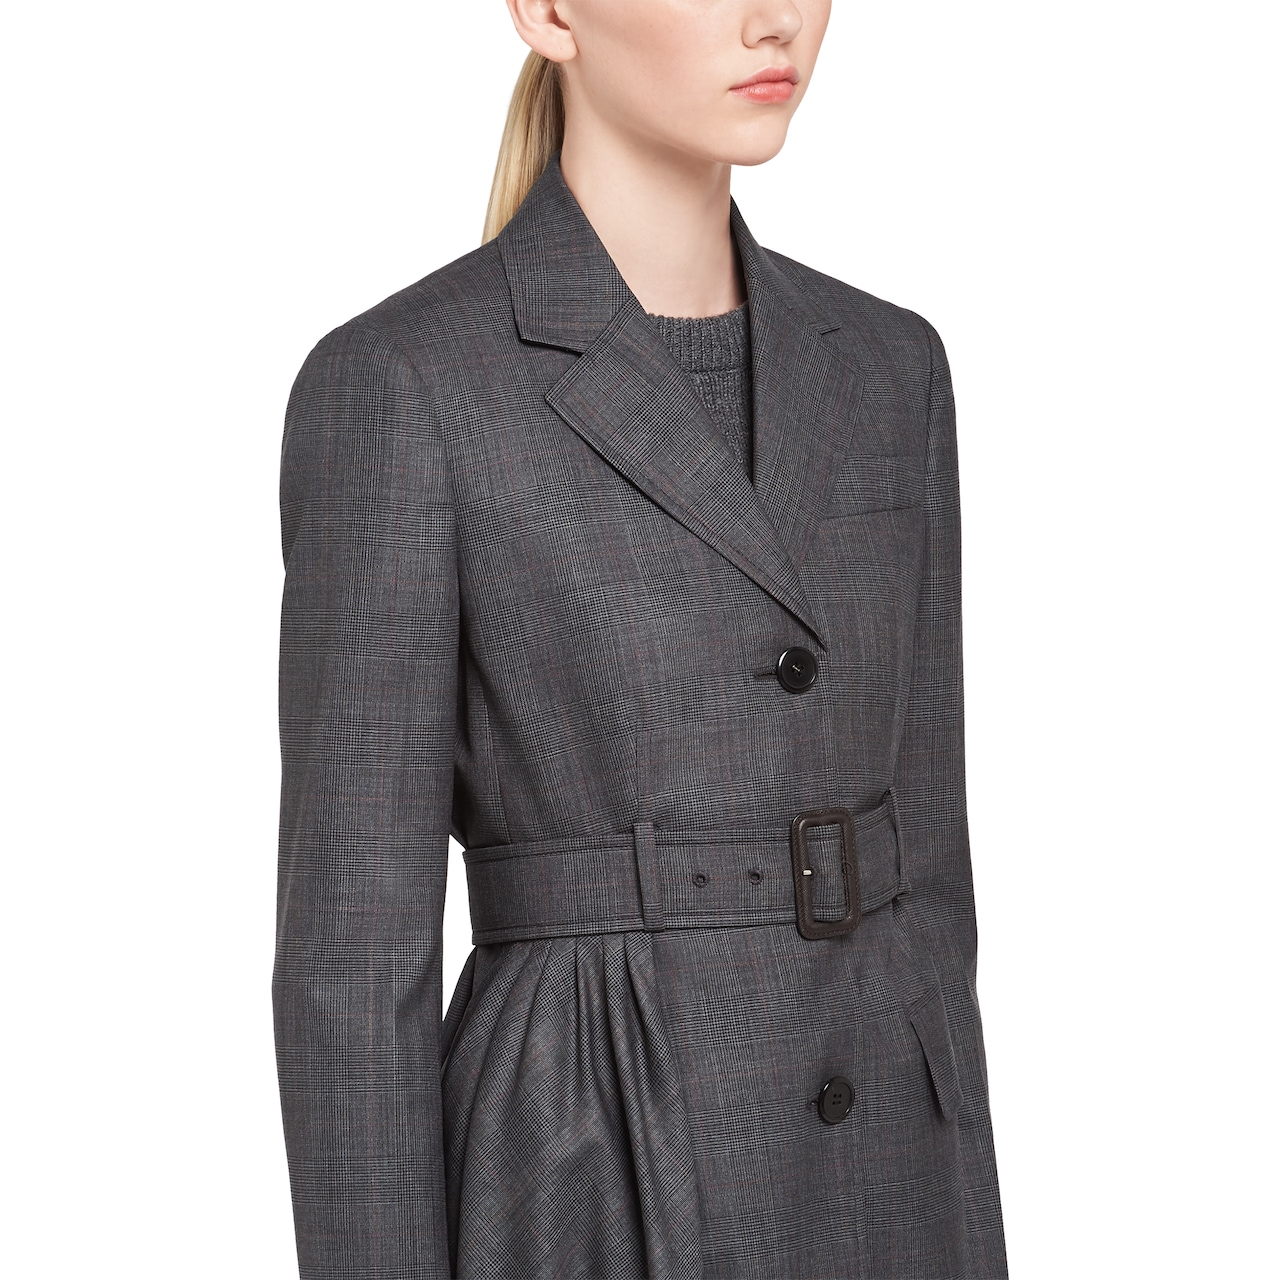 Prince of Wales checked jacket